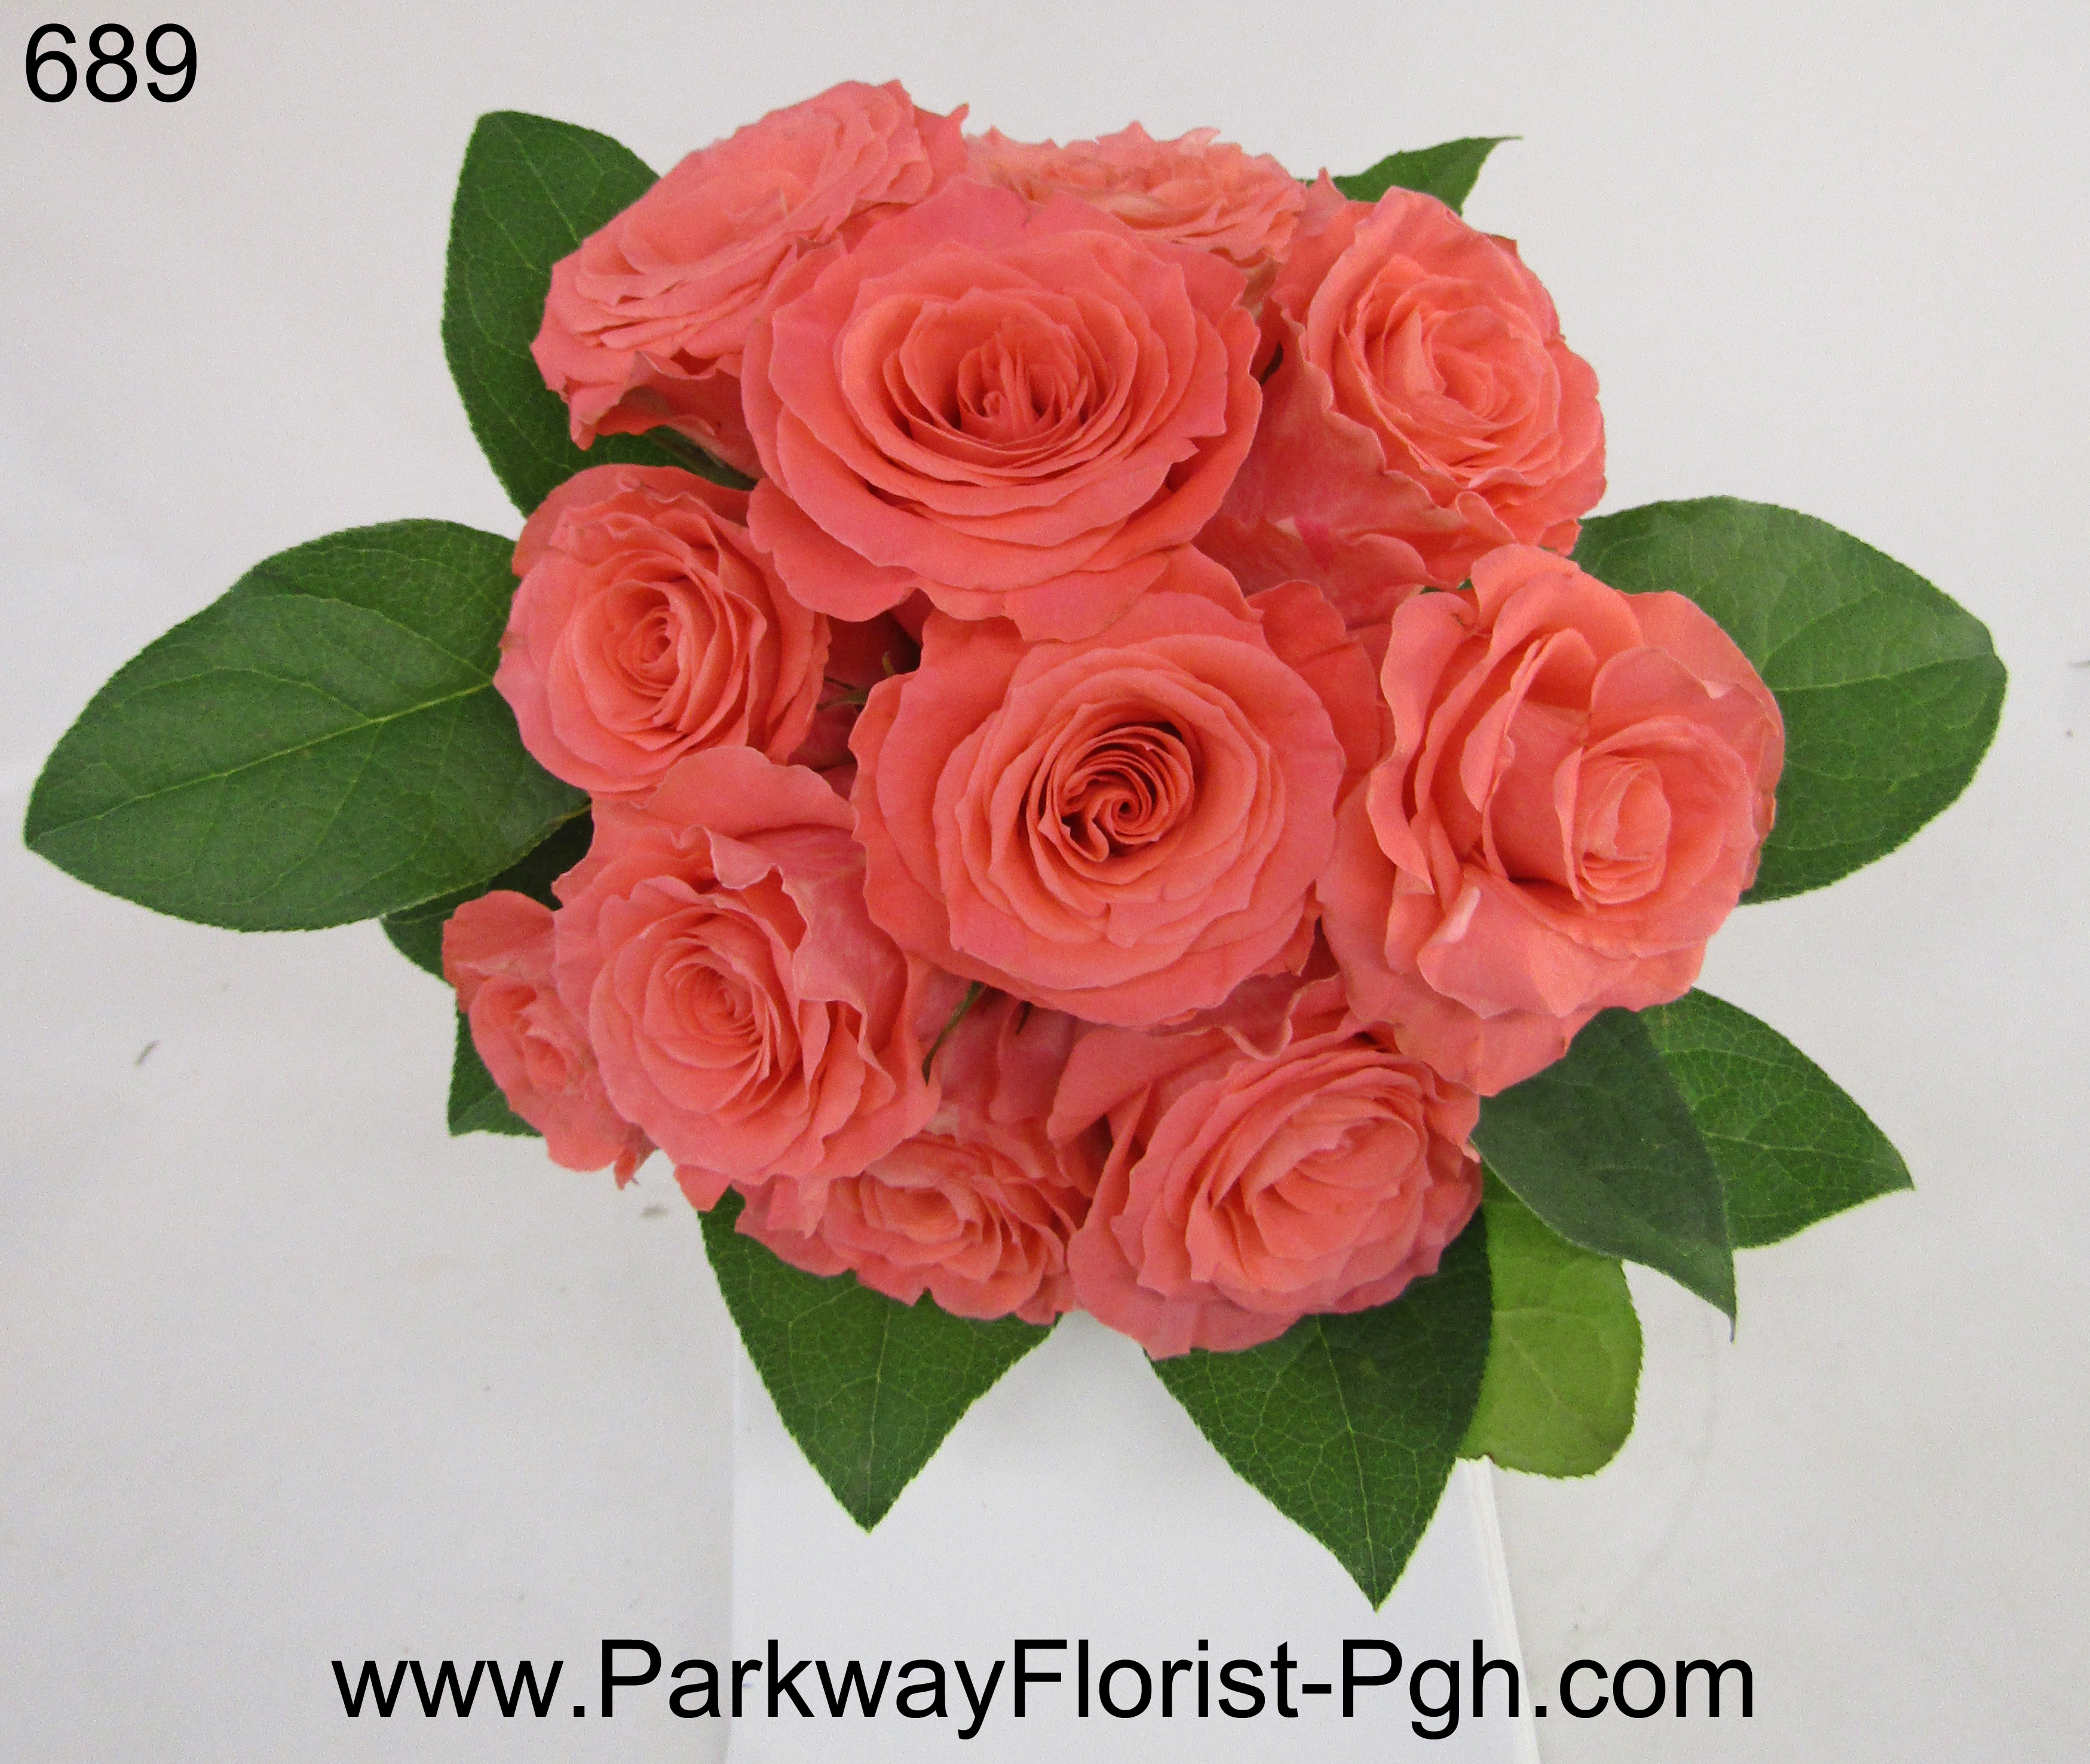 National rose day parkway florist pittsburgh blog part of the appeal when it comes to roses is that they come in a wide array of colors that can be used in stunning combinations or enjoyed on their own izmirmasajfo